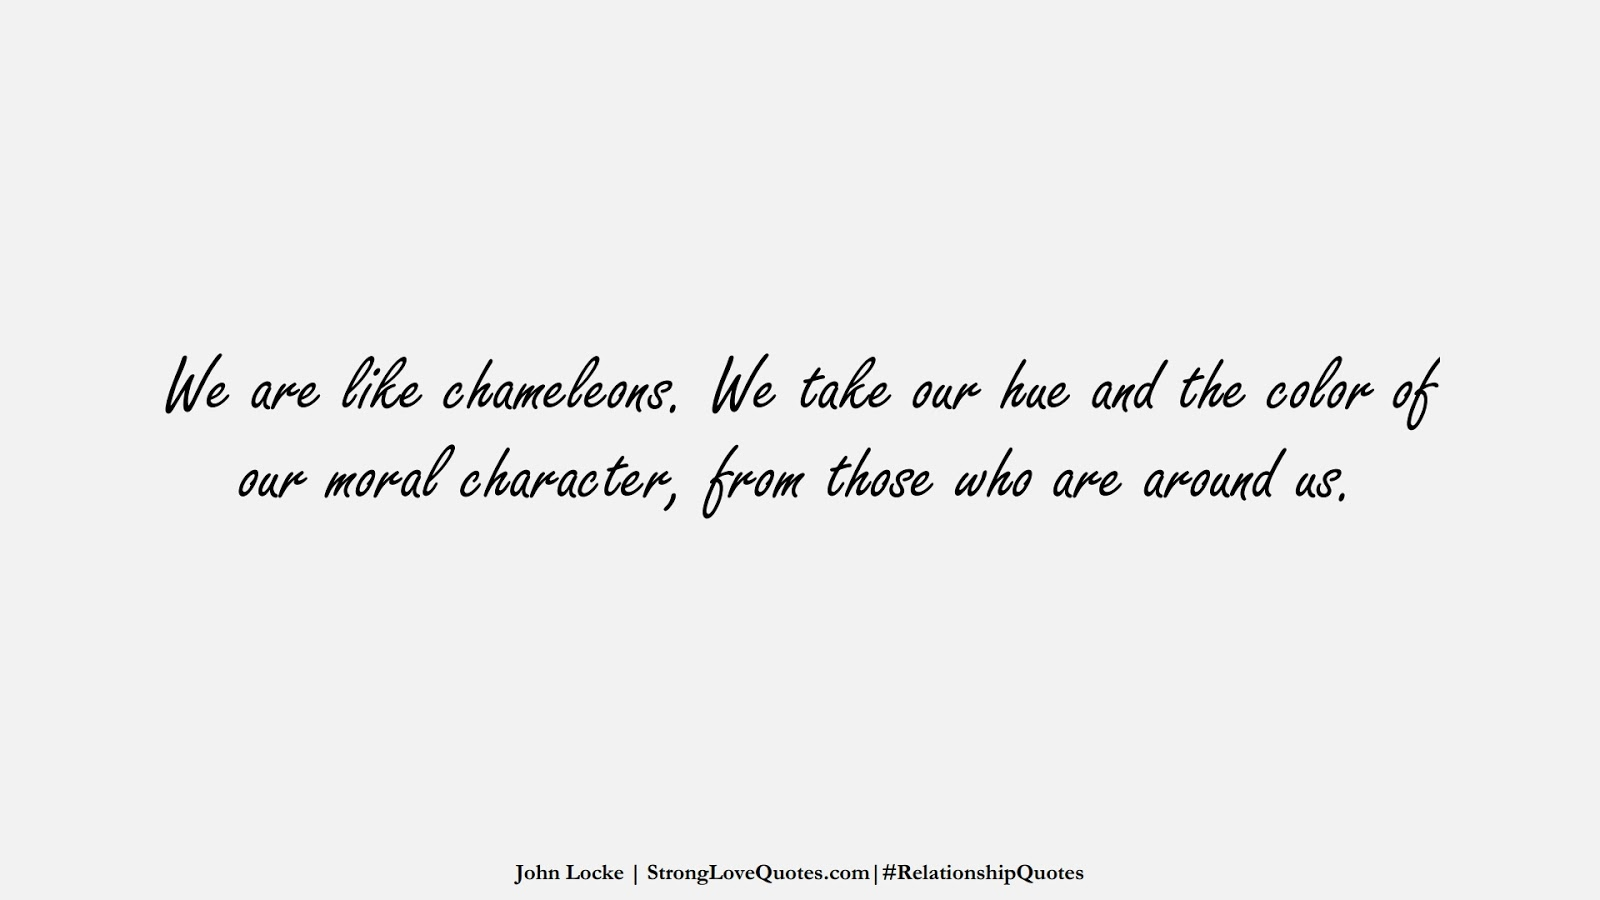 We are like chameleons. We take our hue and the color of our moral character, from those who are around us. (John Locke);  #RelationshipQuotes